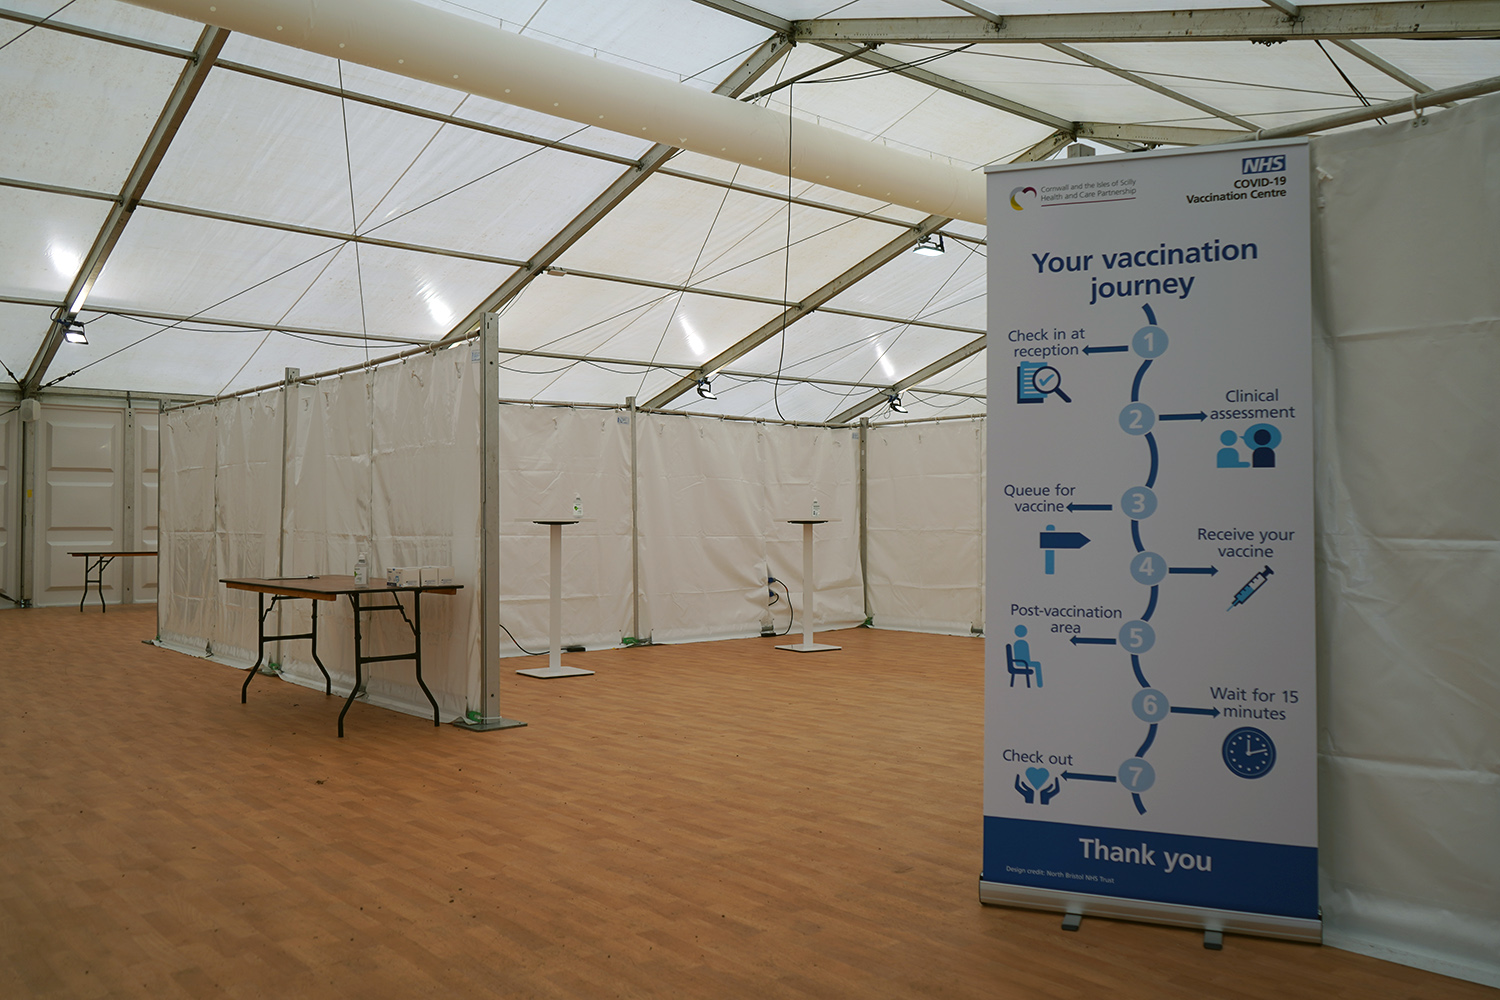 Entrance to Stithians Showground vaccination centre with sign showing vaccination journey